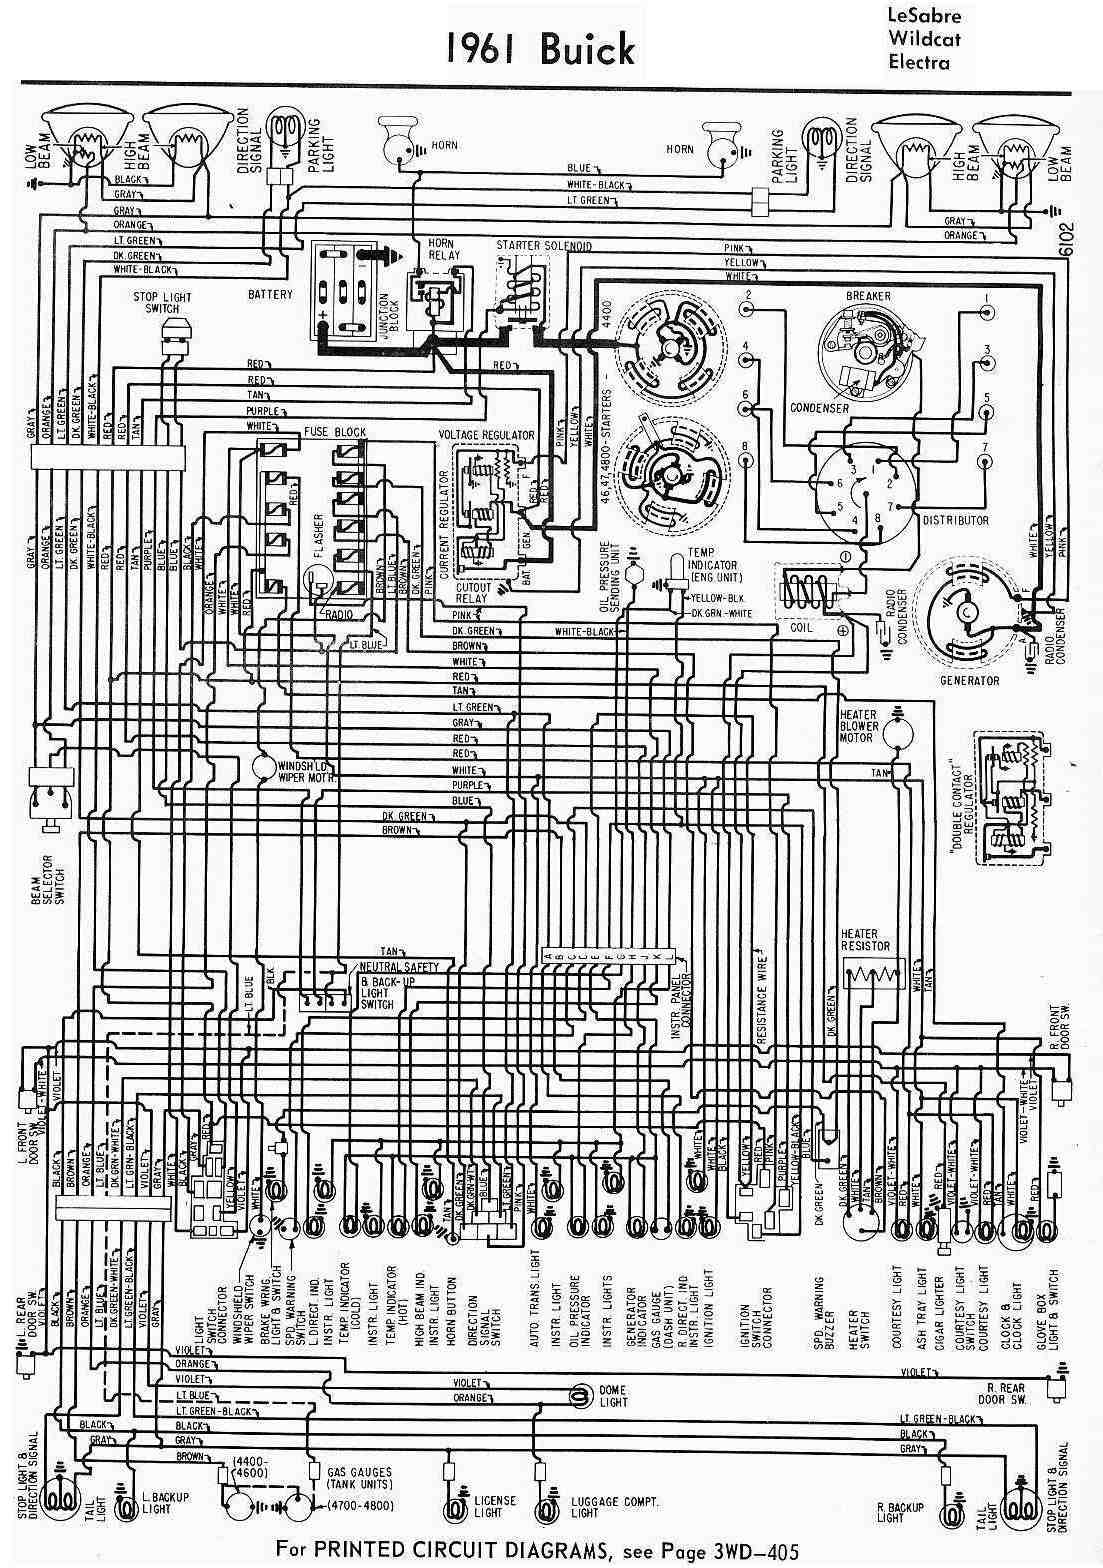 Kenworth W900 Fuse Panel Diagram Great Design Of Wiring 1998 Buick Lesabre Box 2007 T600 2000